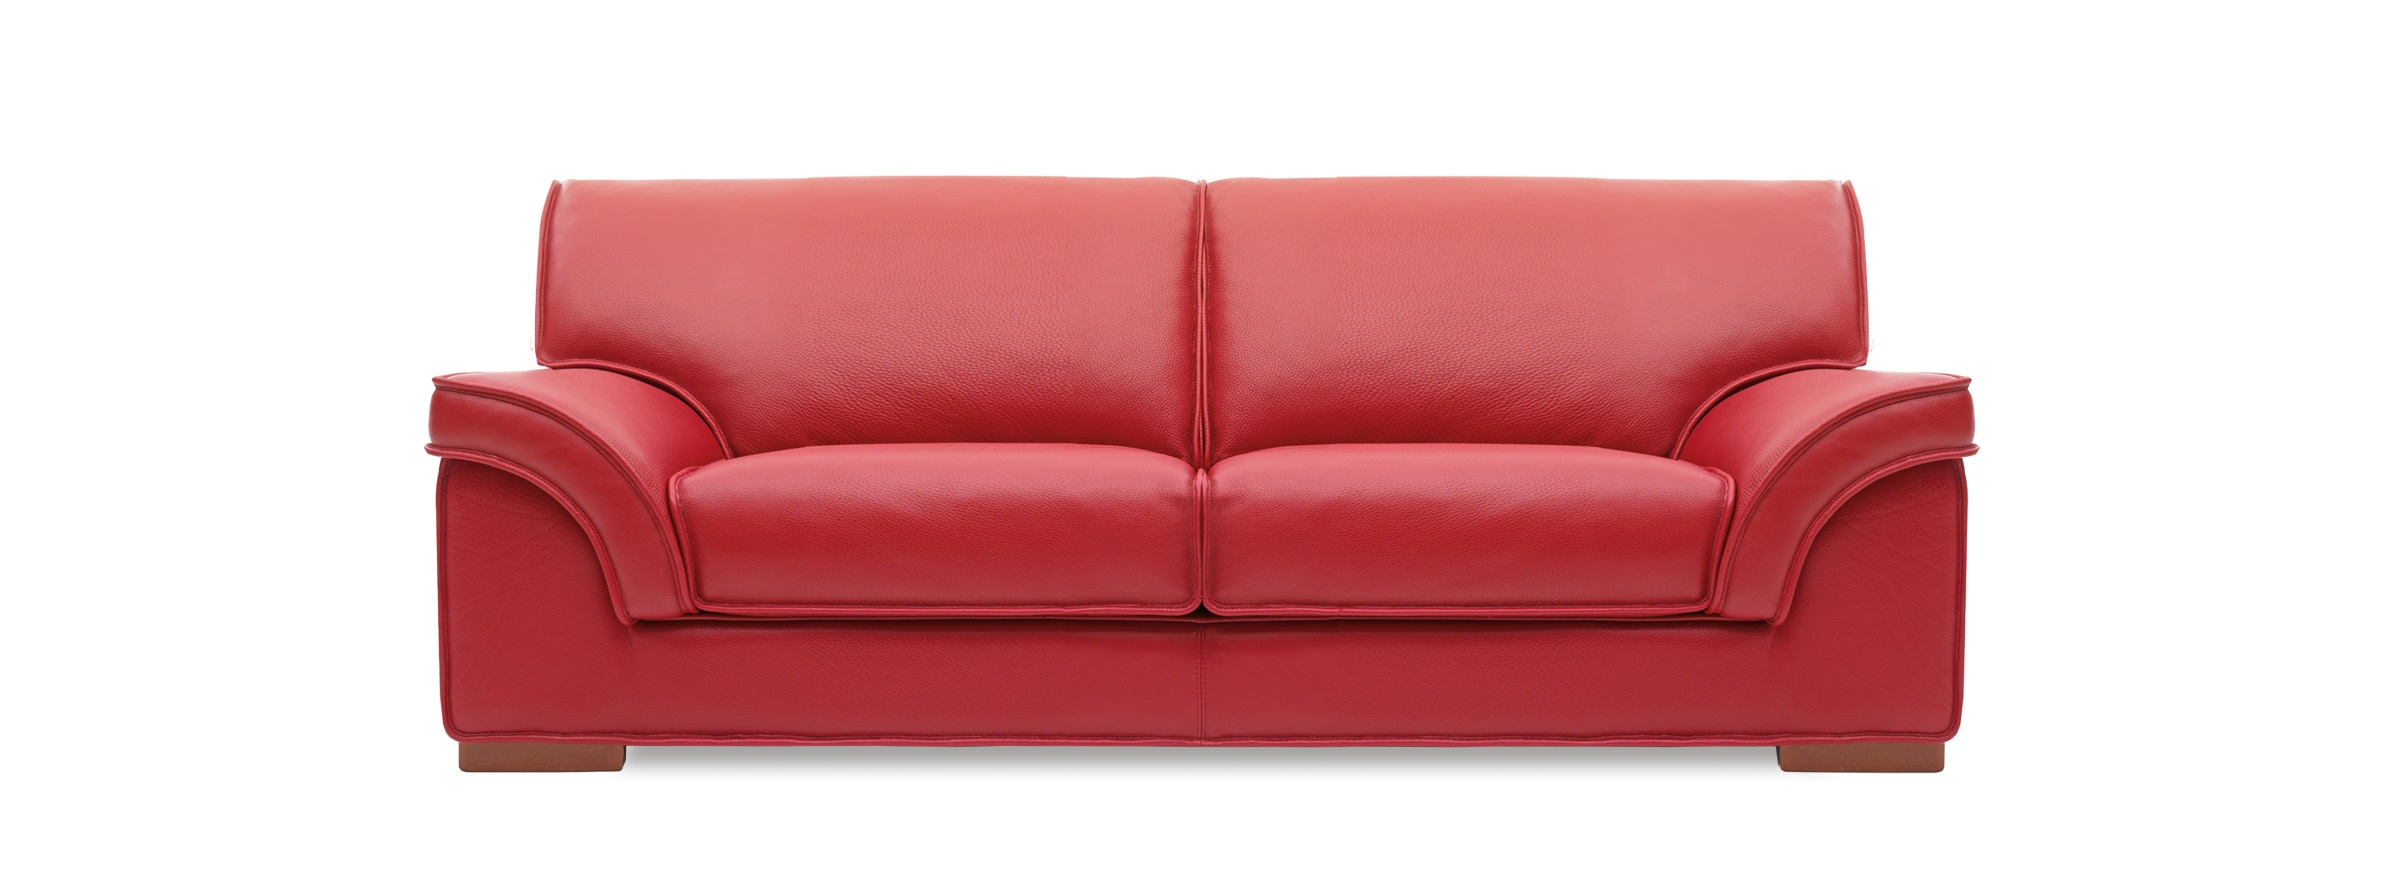 Canape Cuir Rouge Conforama Cool Canape Cuir Rouge Canapac Cuir